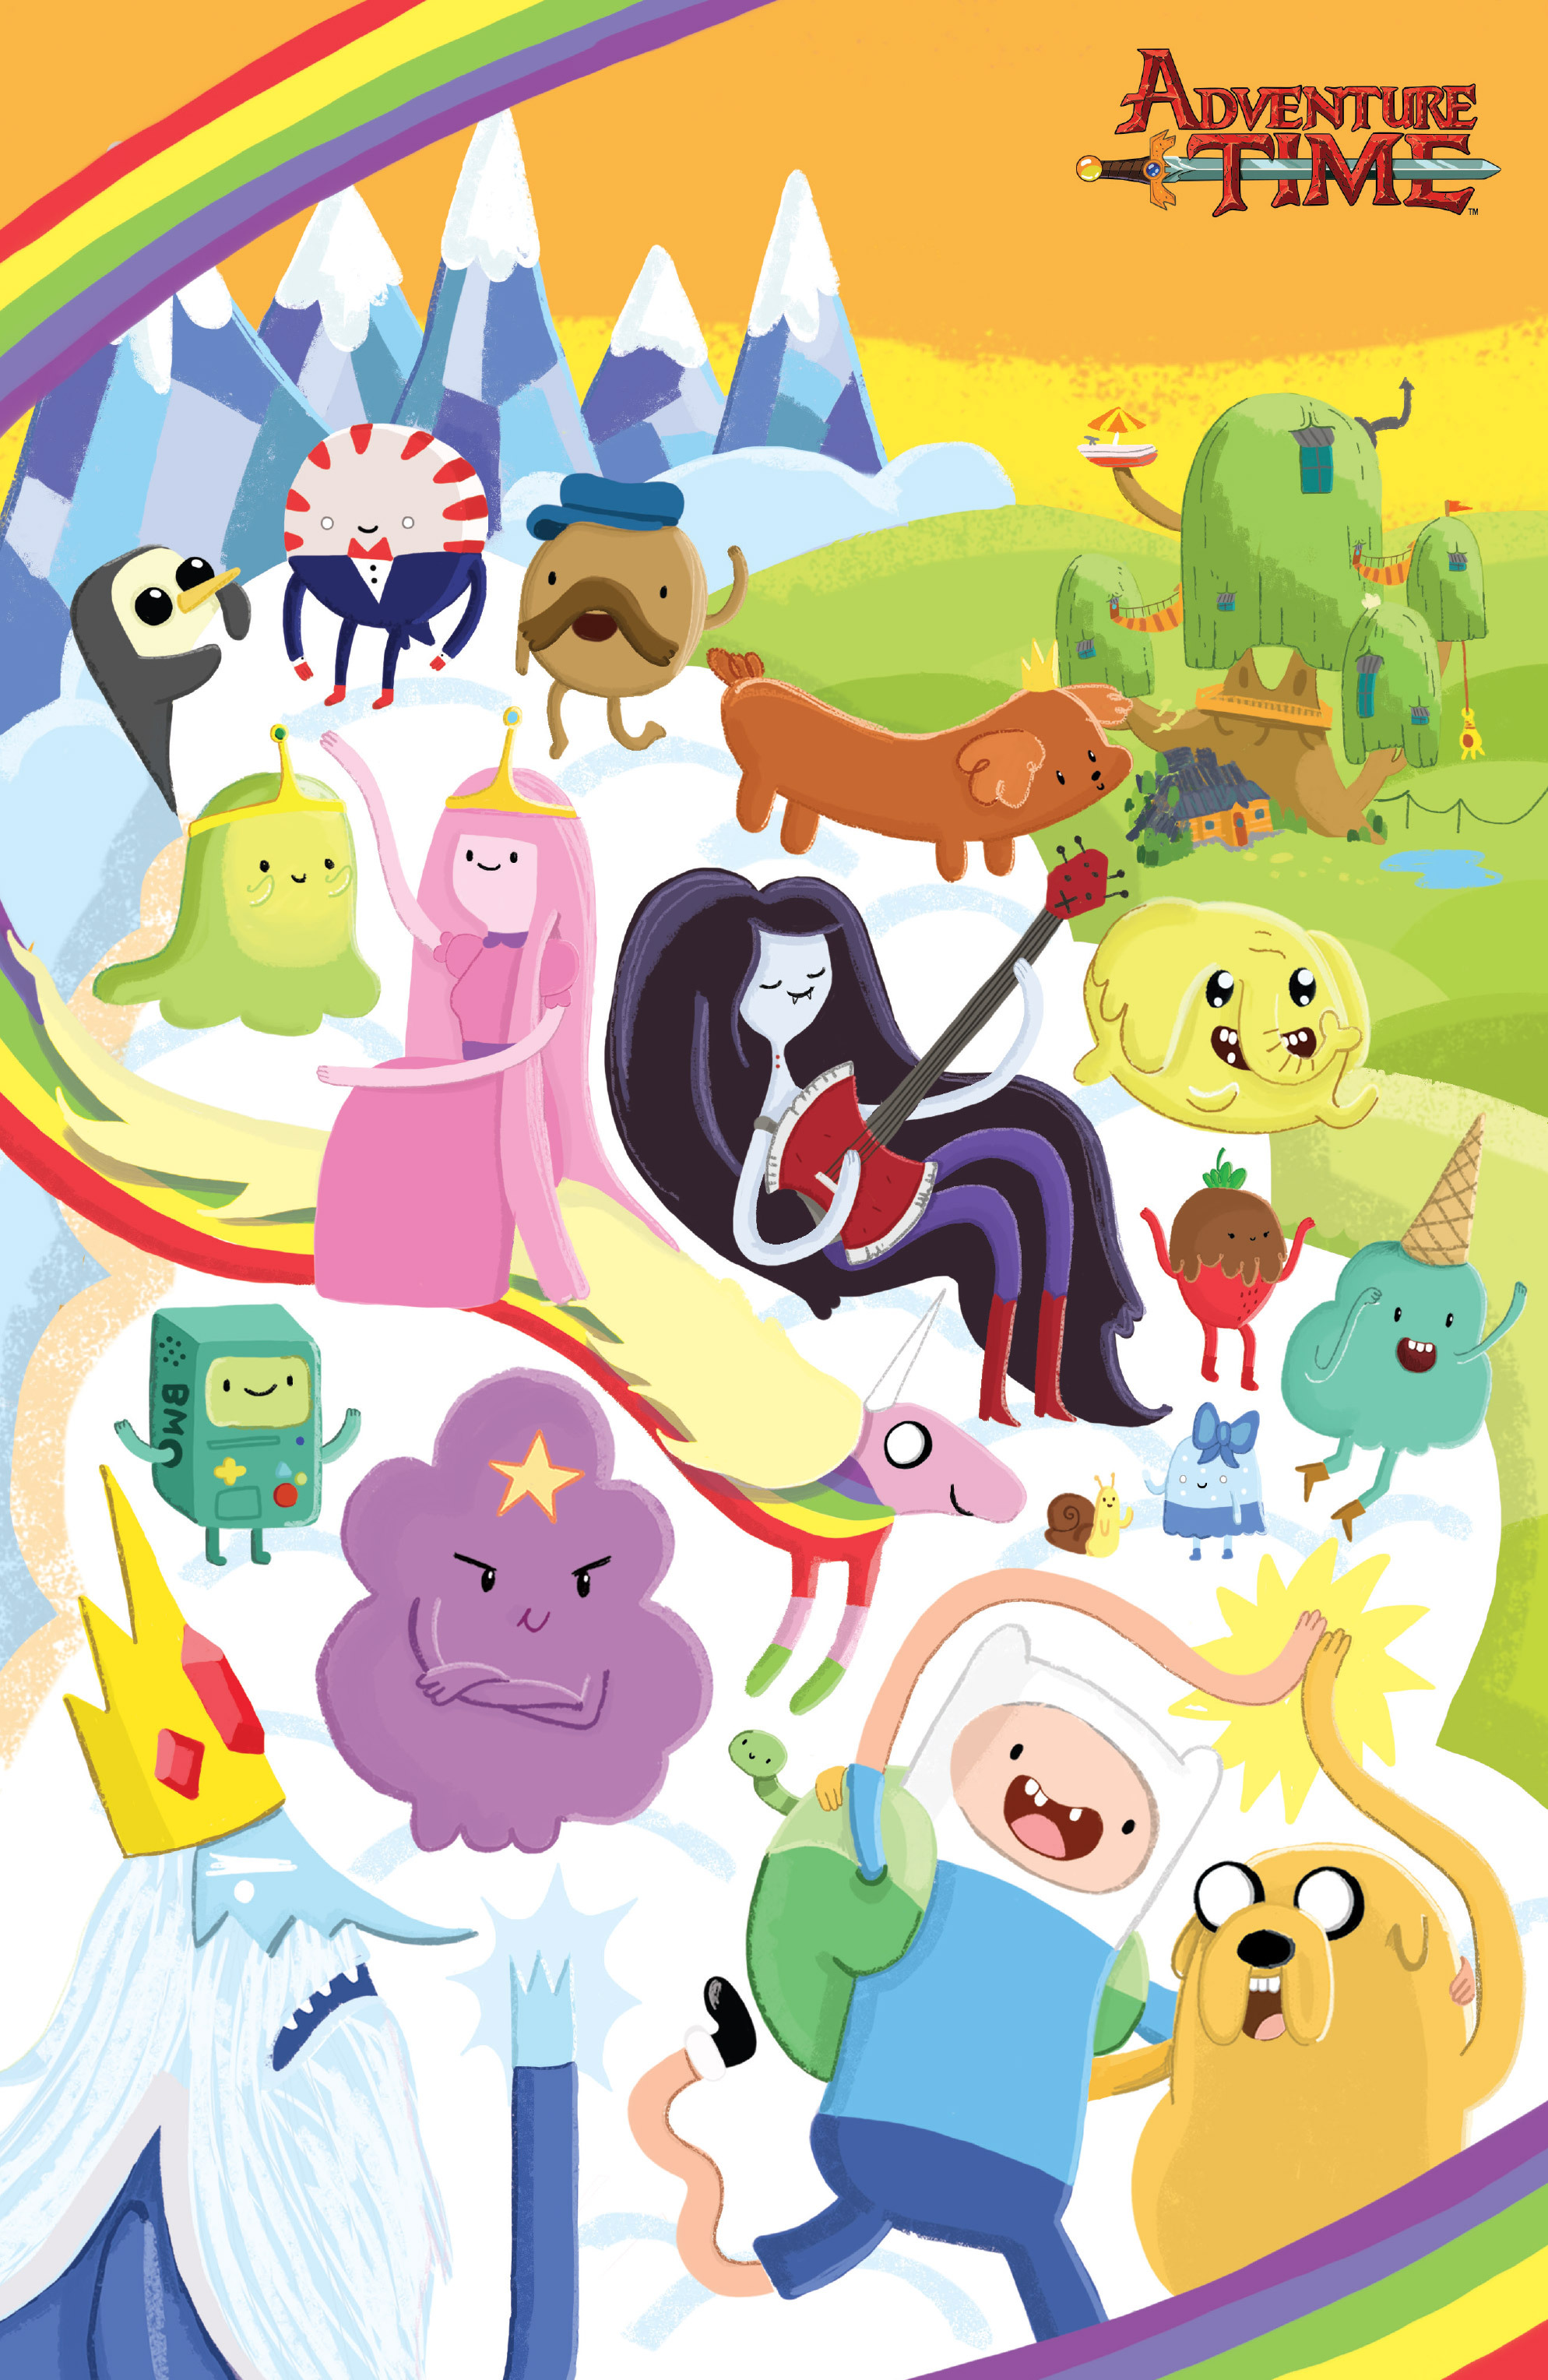 Read online Adventure Time comic -  Issue #26 - 4